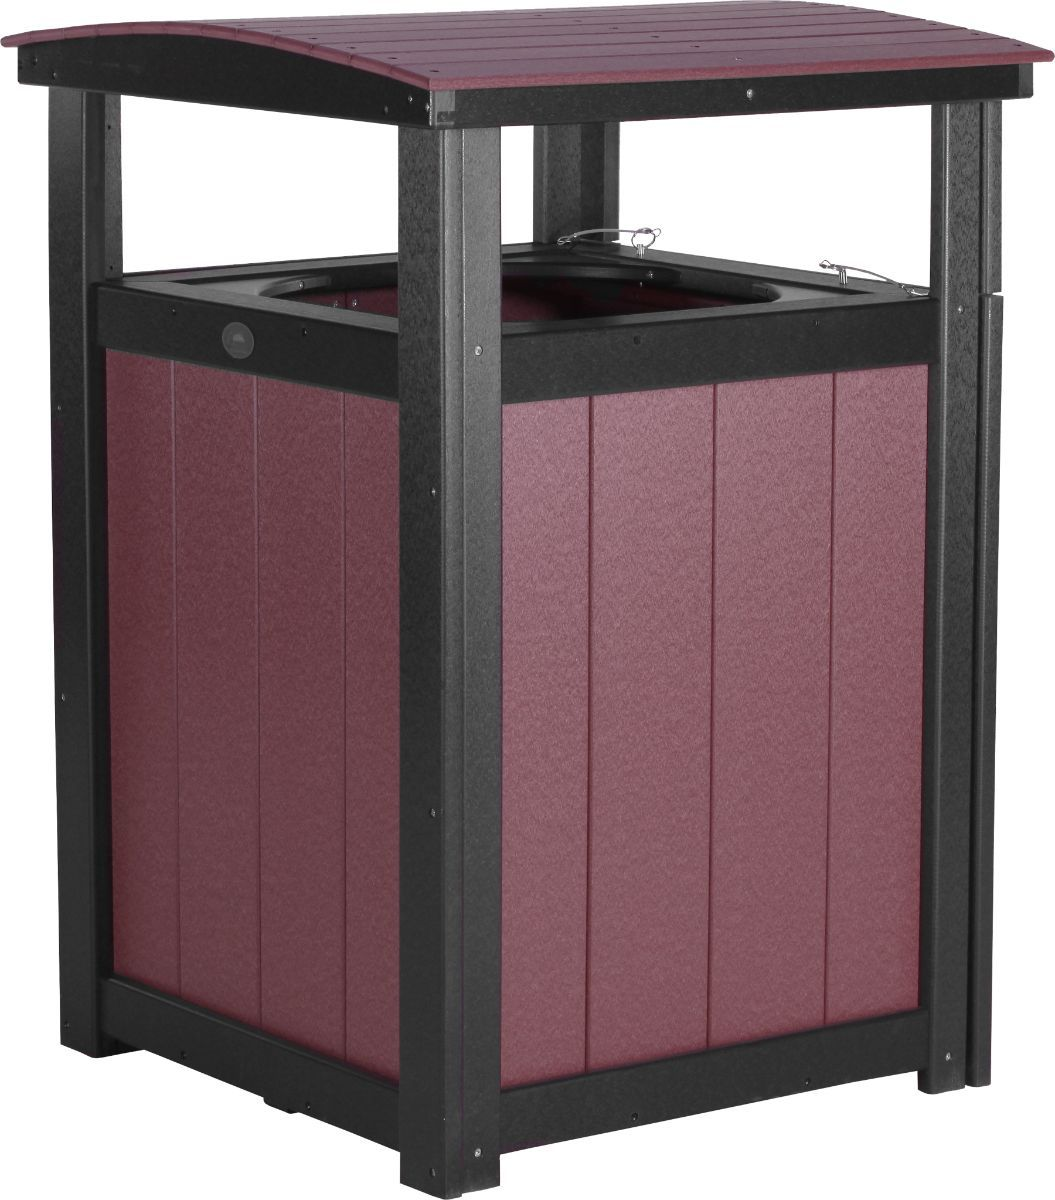 Cherrywood and Black Pigeon Point Commercial Outdoor Trashcan